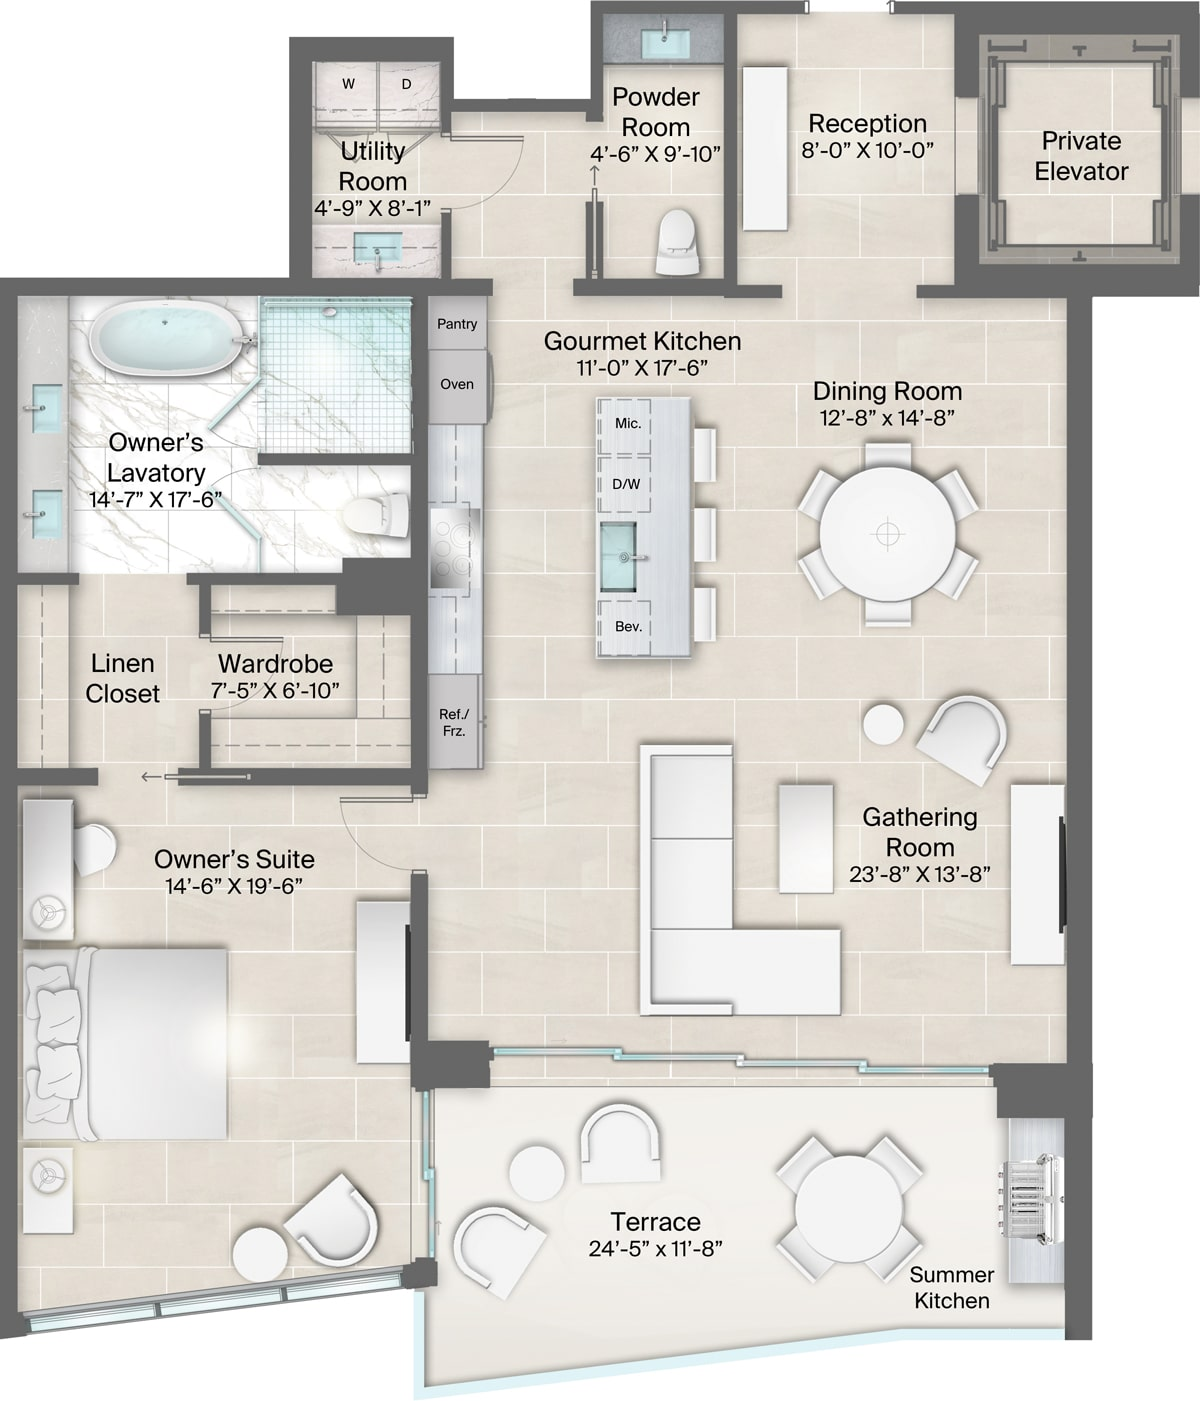 Champagne Building, Plan 15 & 16 Floorplan includes 1 bedroom, 1.5 baths and terrace